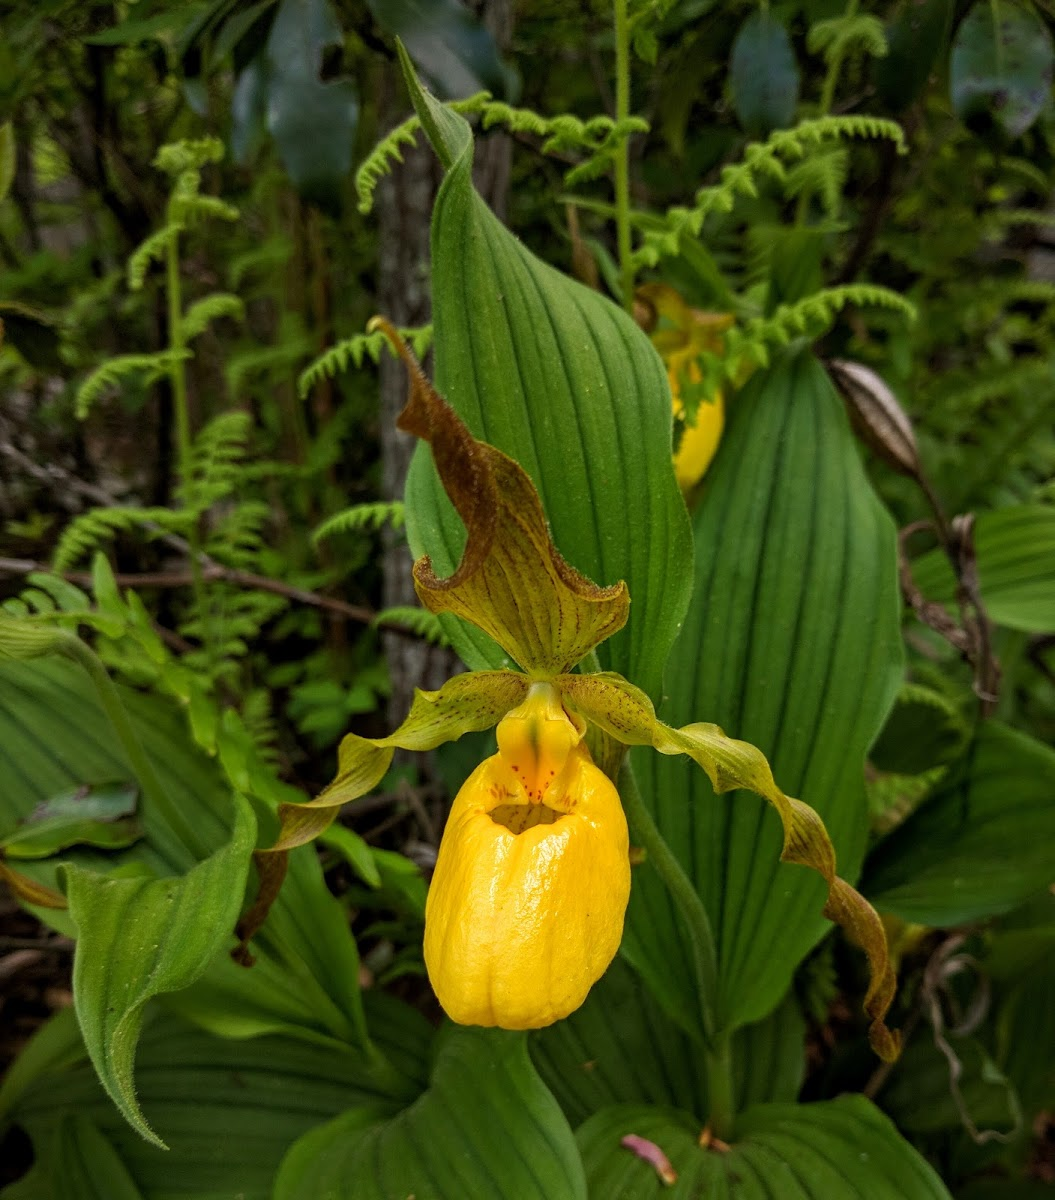 Greater Yellow Lady's Slipper